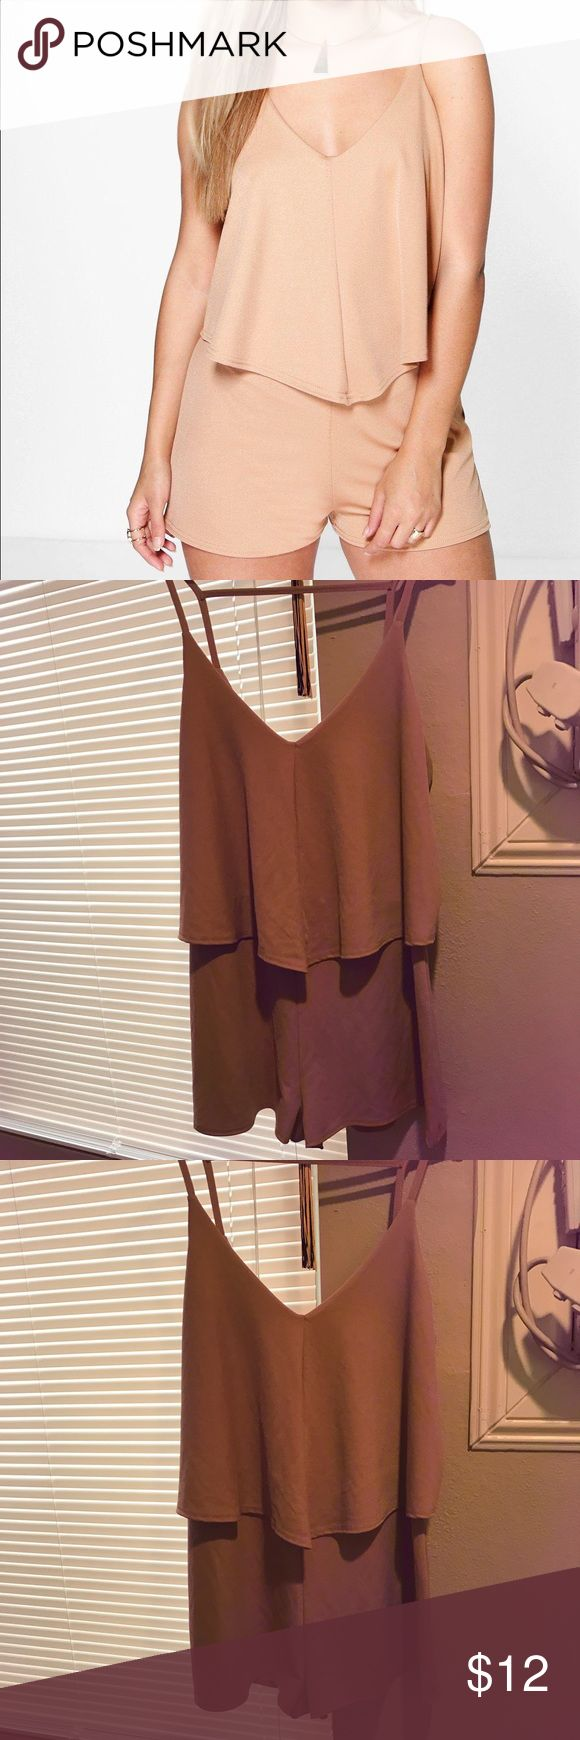 Boohoo Plus Stephanie Double Layer playsuit Camel colored playsuit. Never worn. NO TRADES Boohoo Plus Other